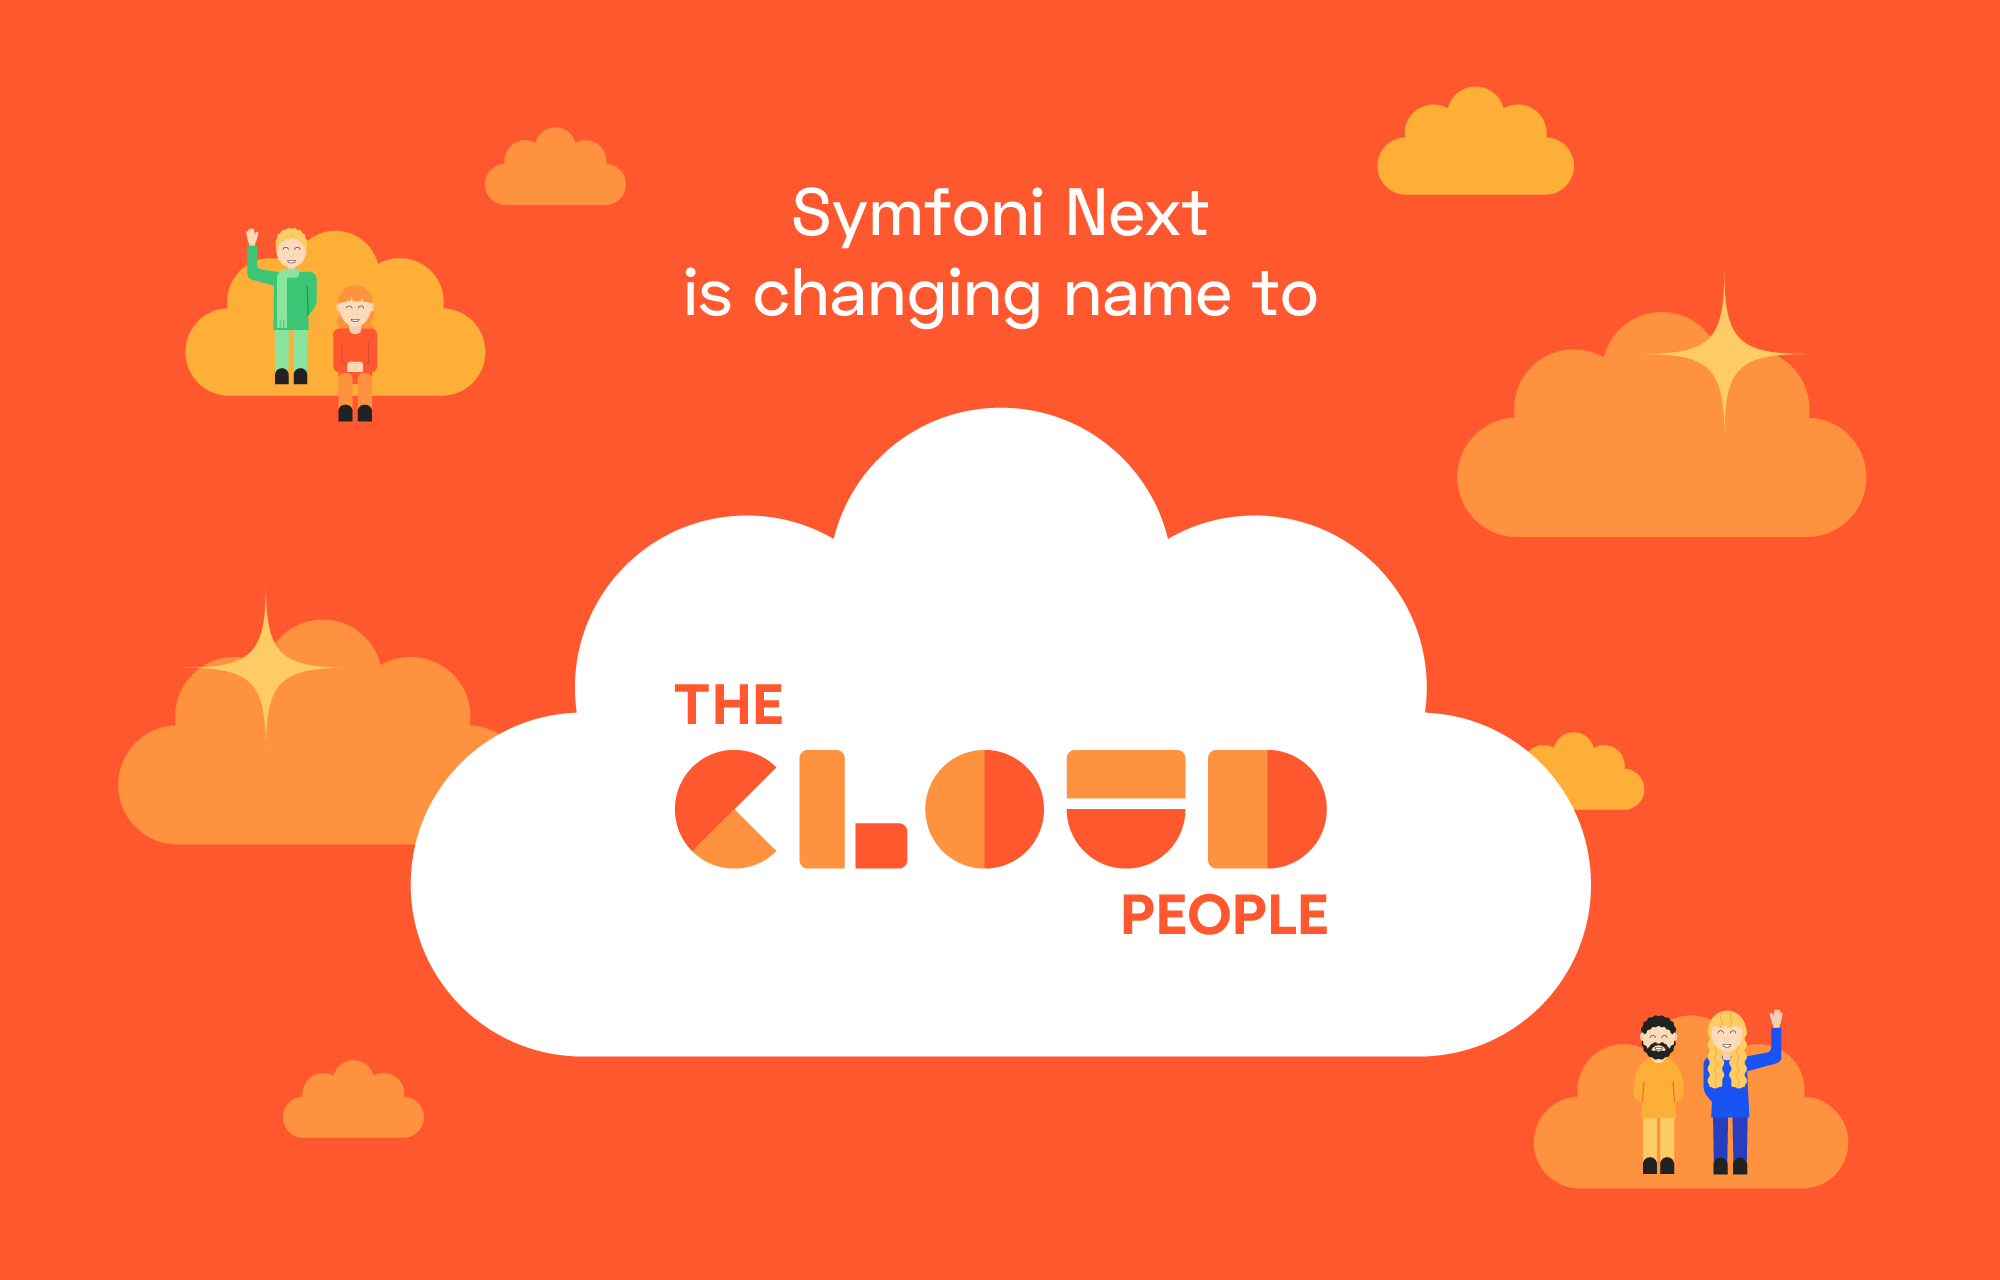 The Cloud People Logo in a cloud.